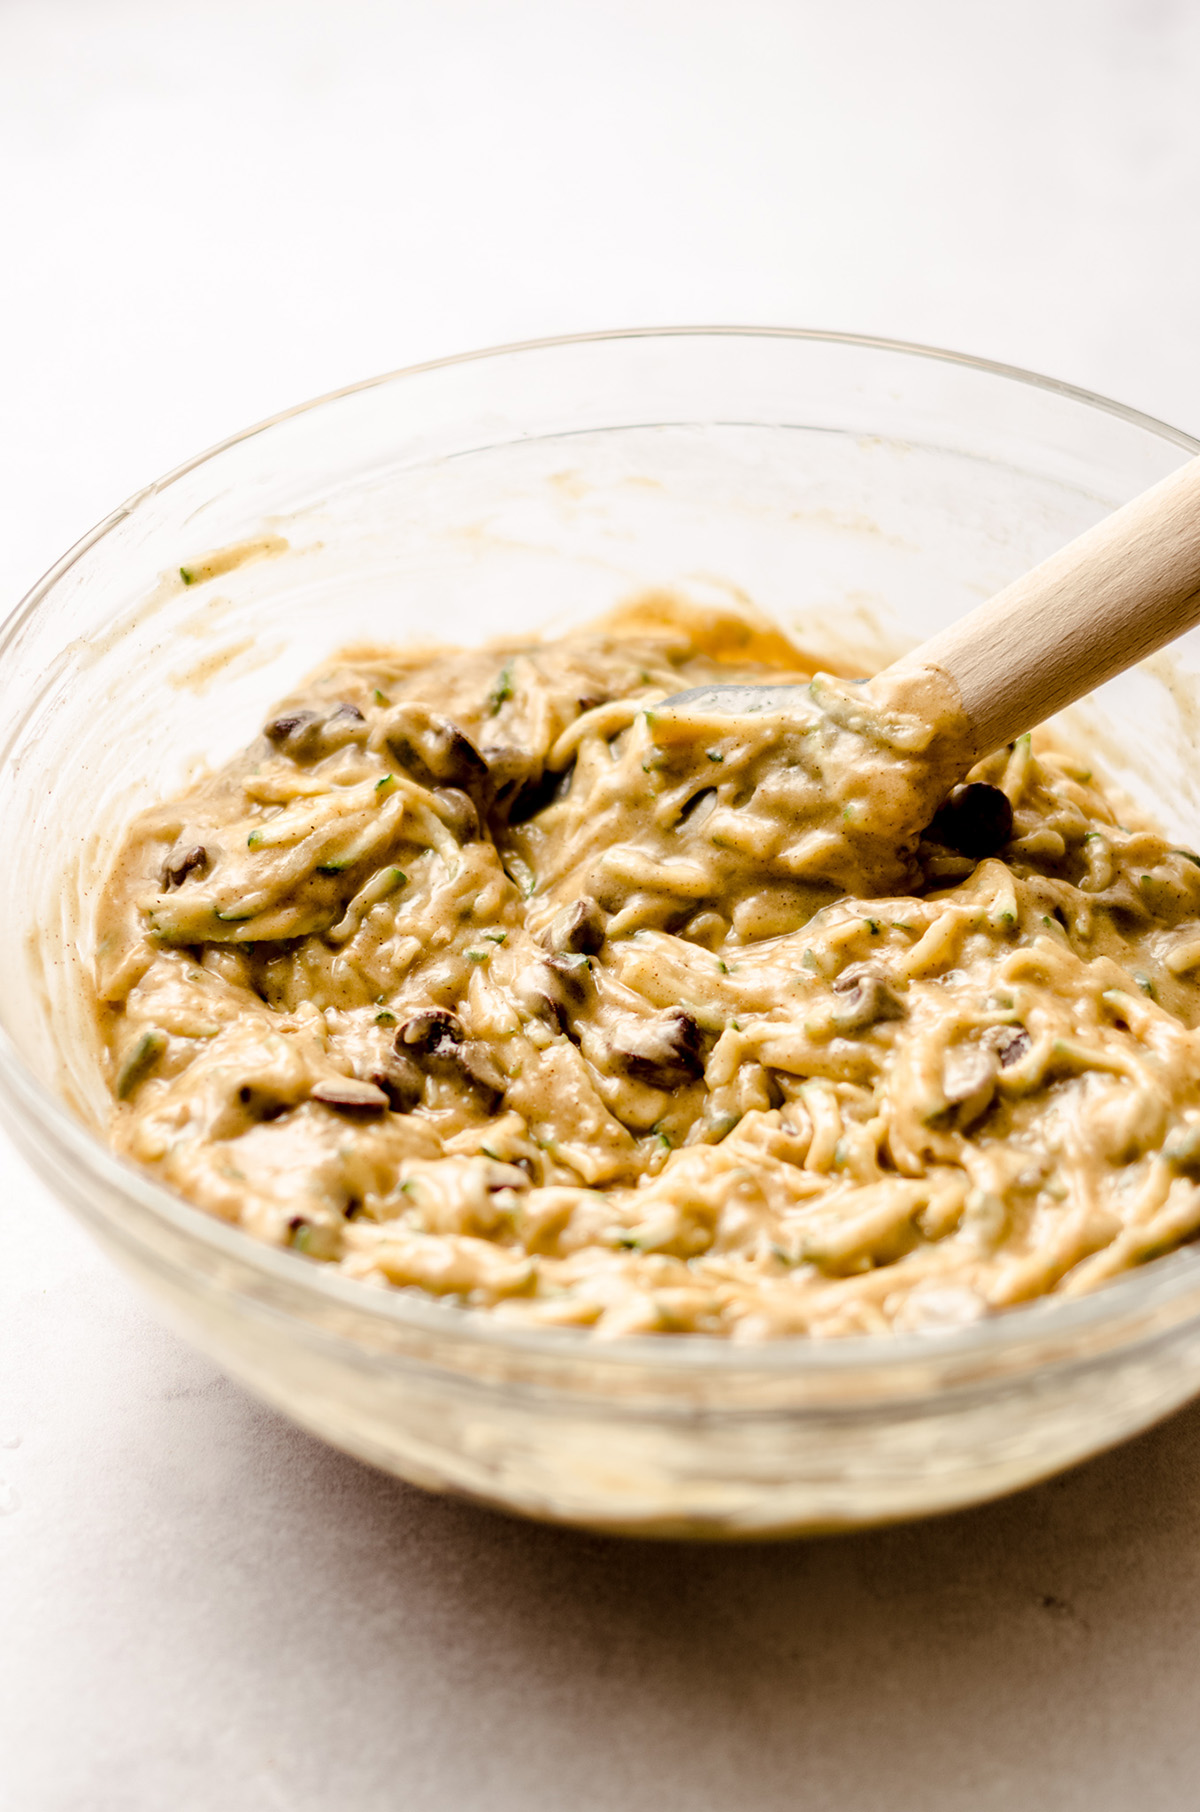 chocolate chip zucchini bread batter in a glass bowl